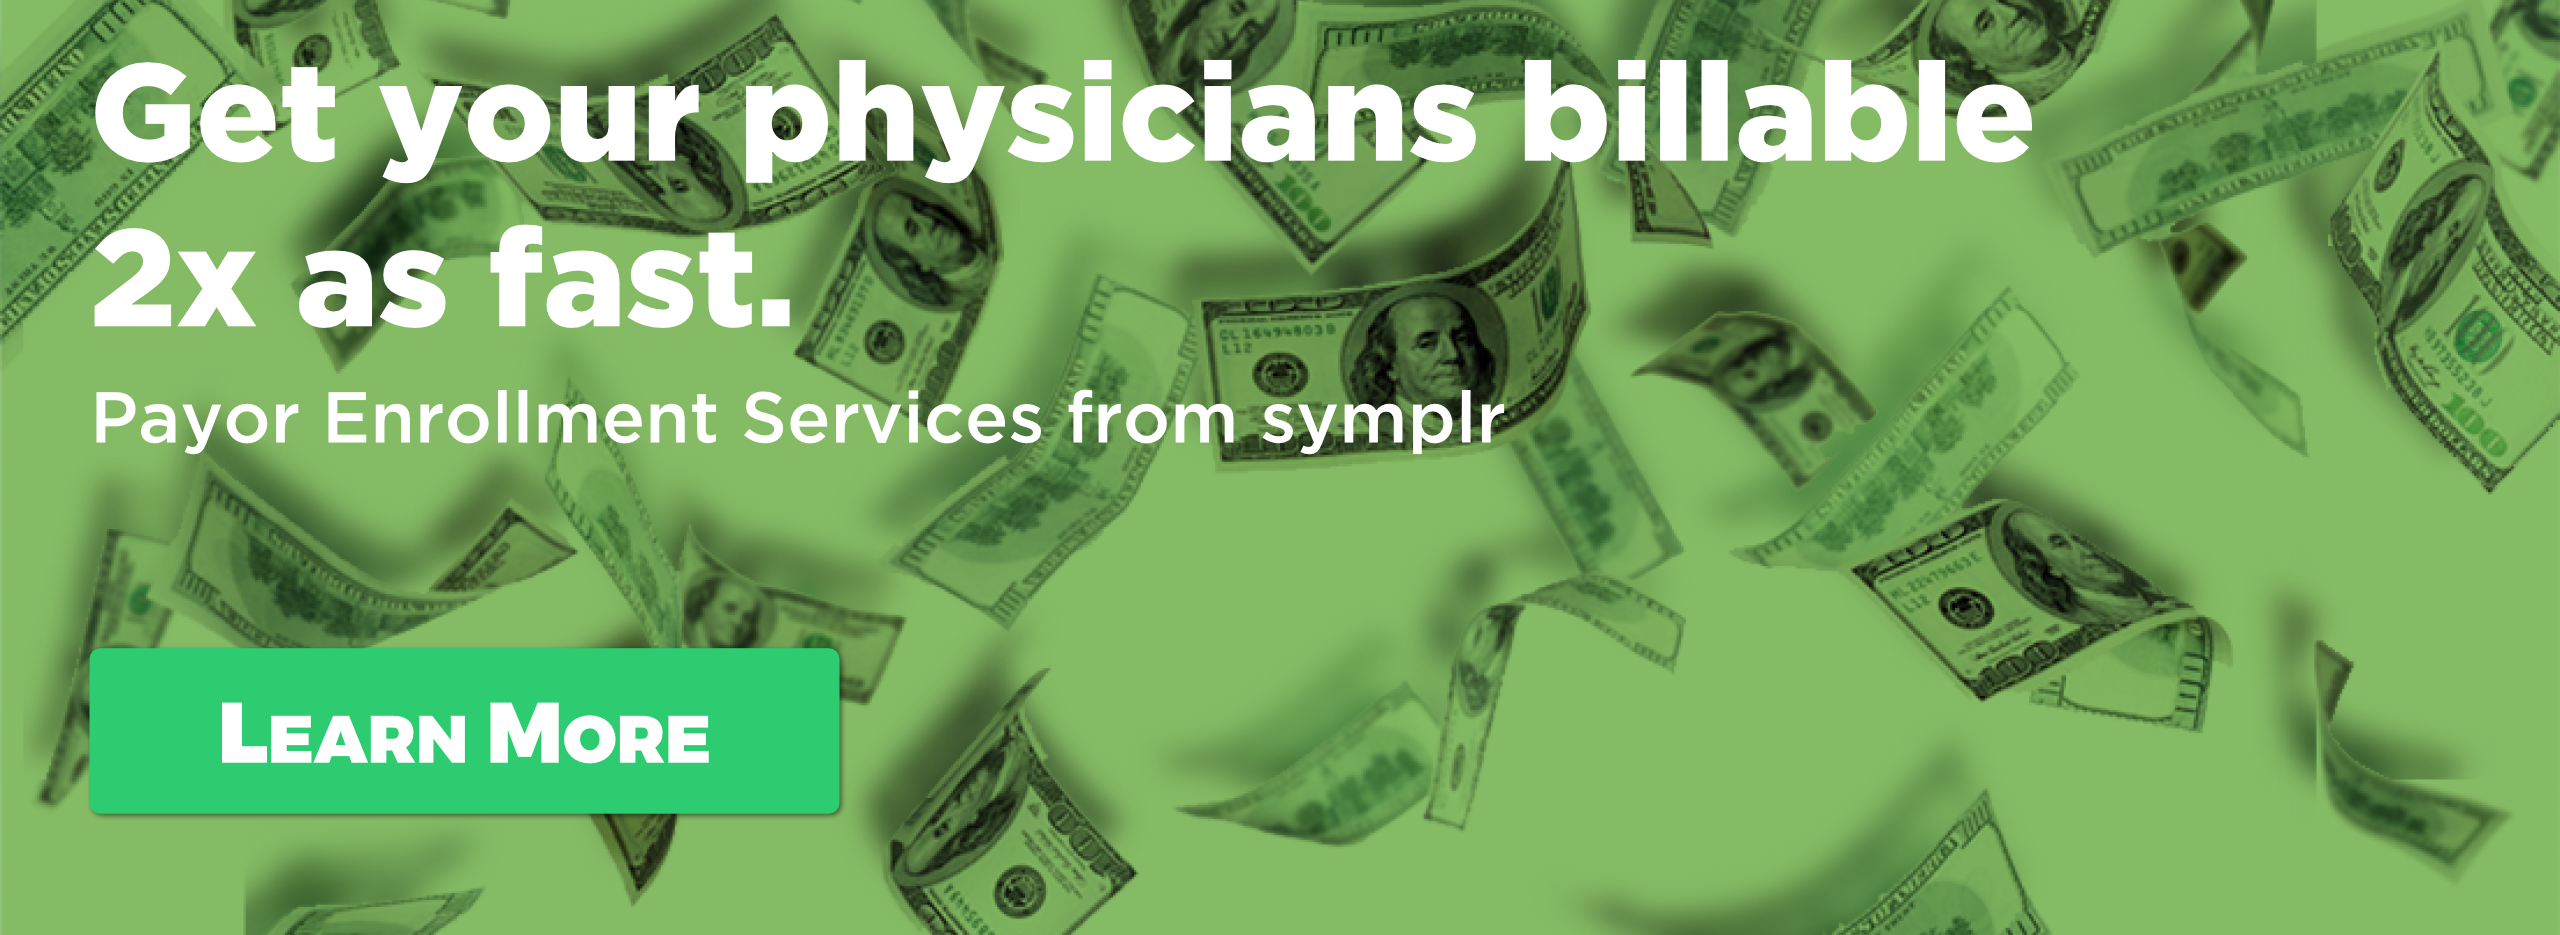 Payor Enrollment Services from symplr